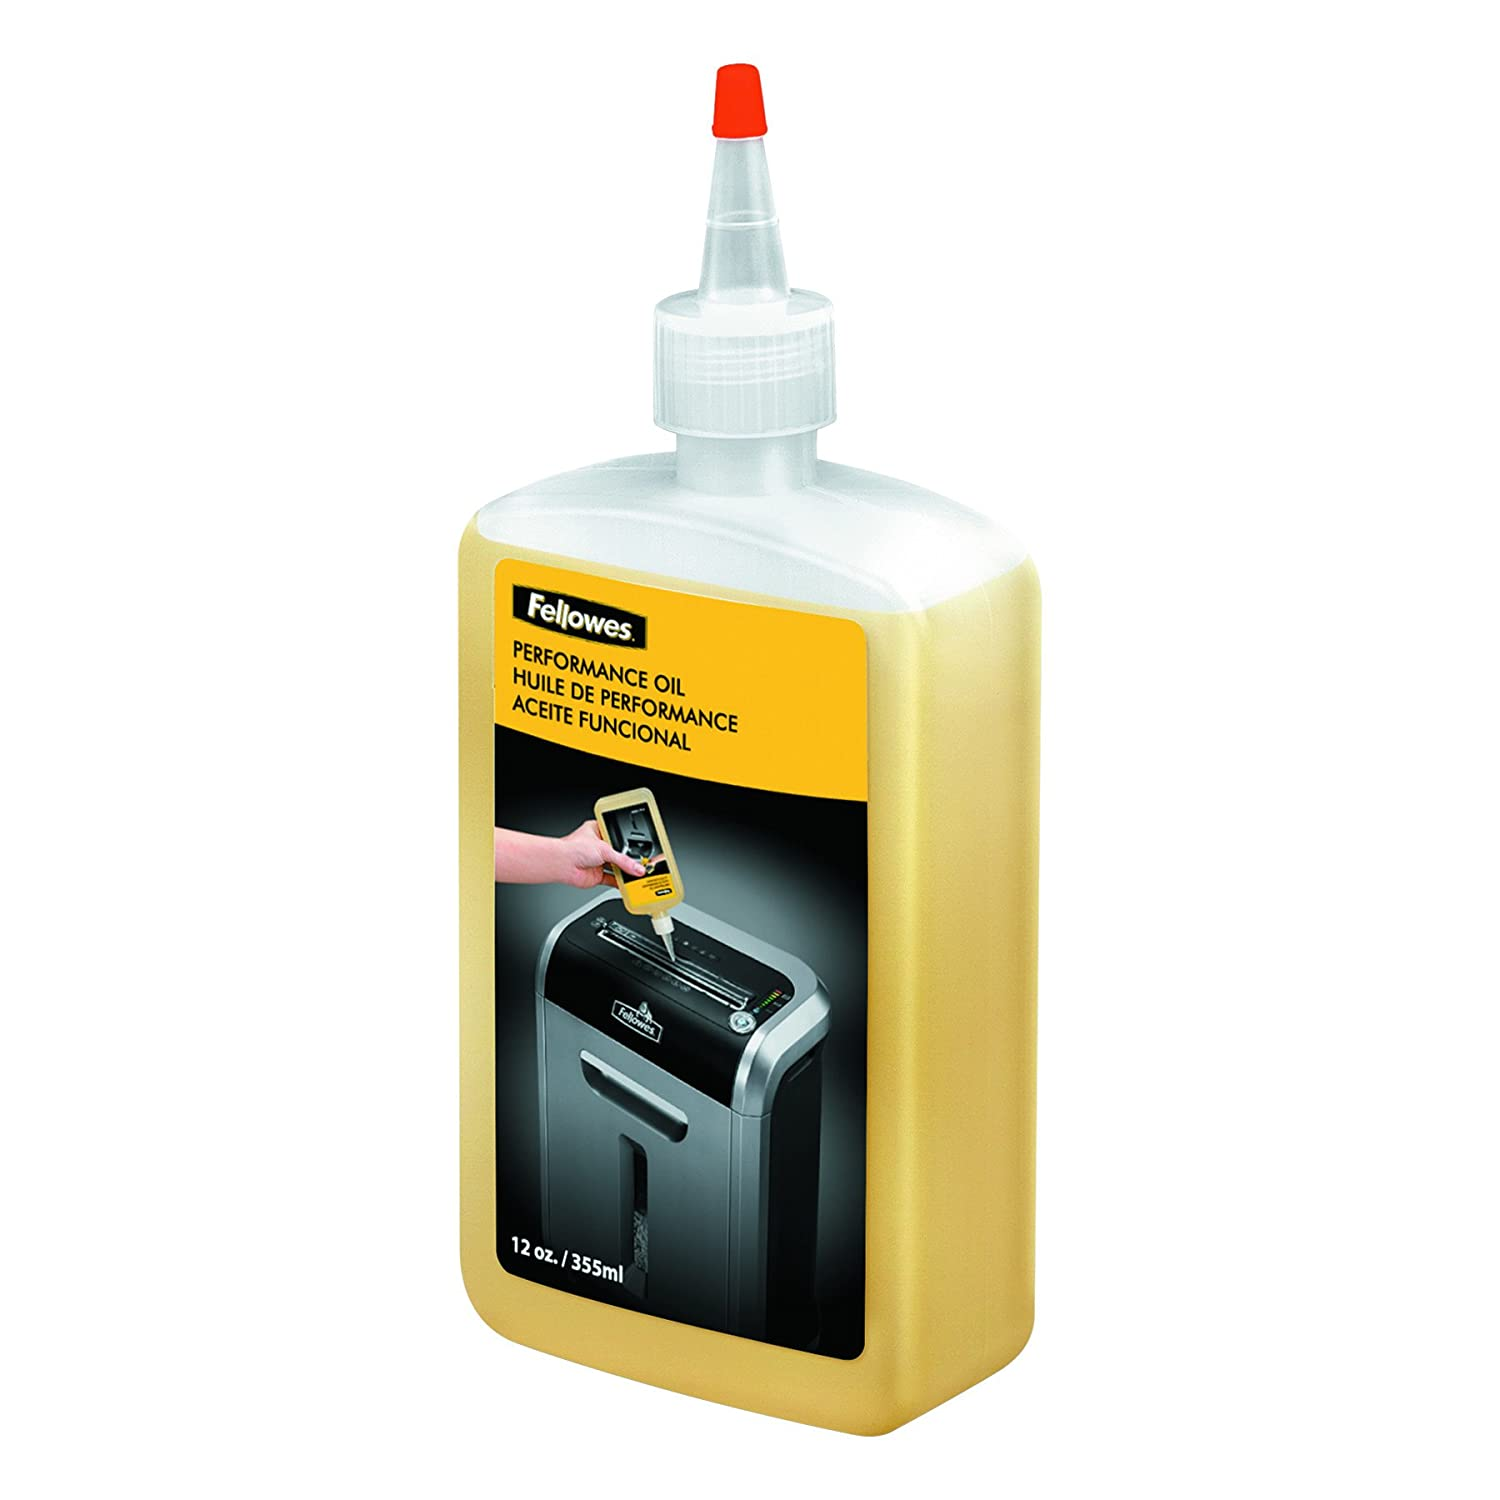 Fellowes Aceite lubricante para destructoras de papel de ml transparente